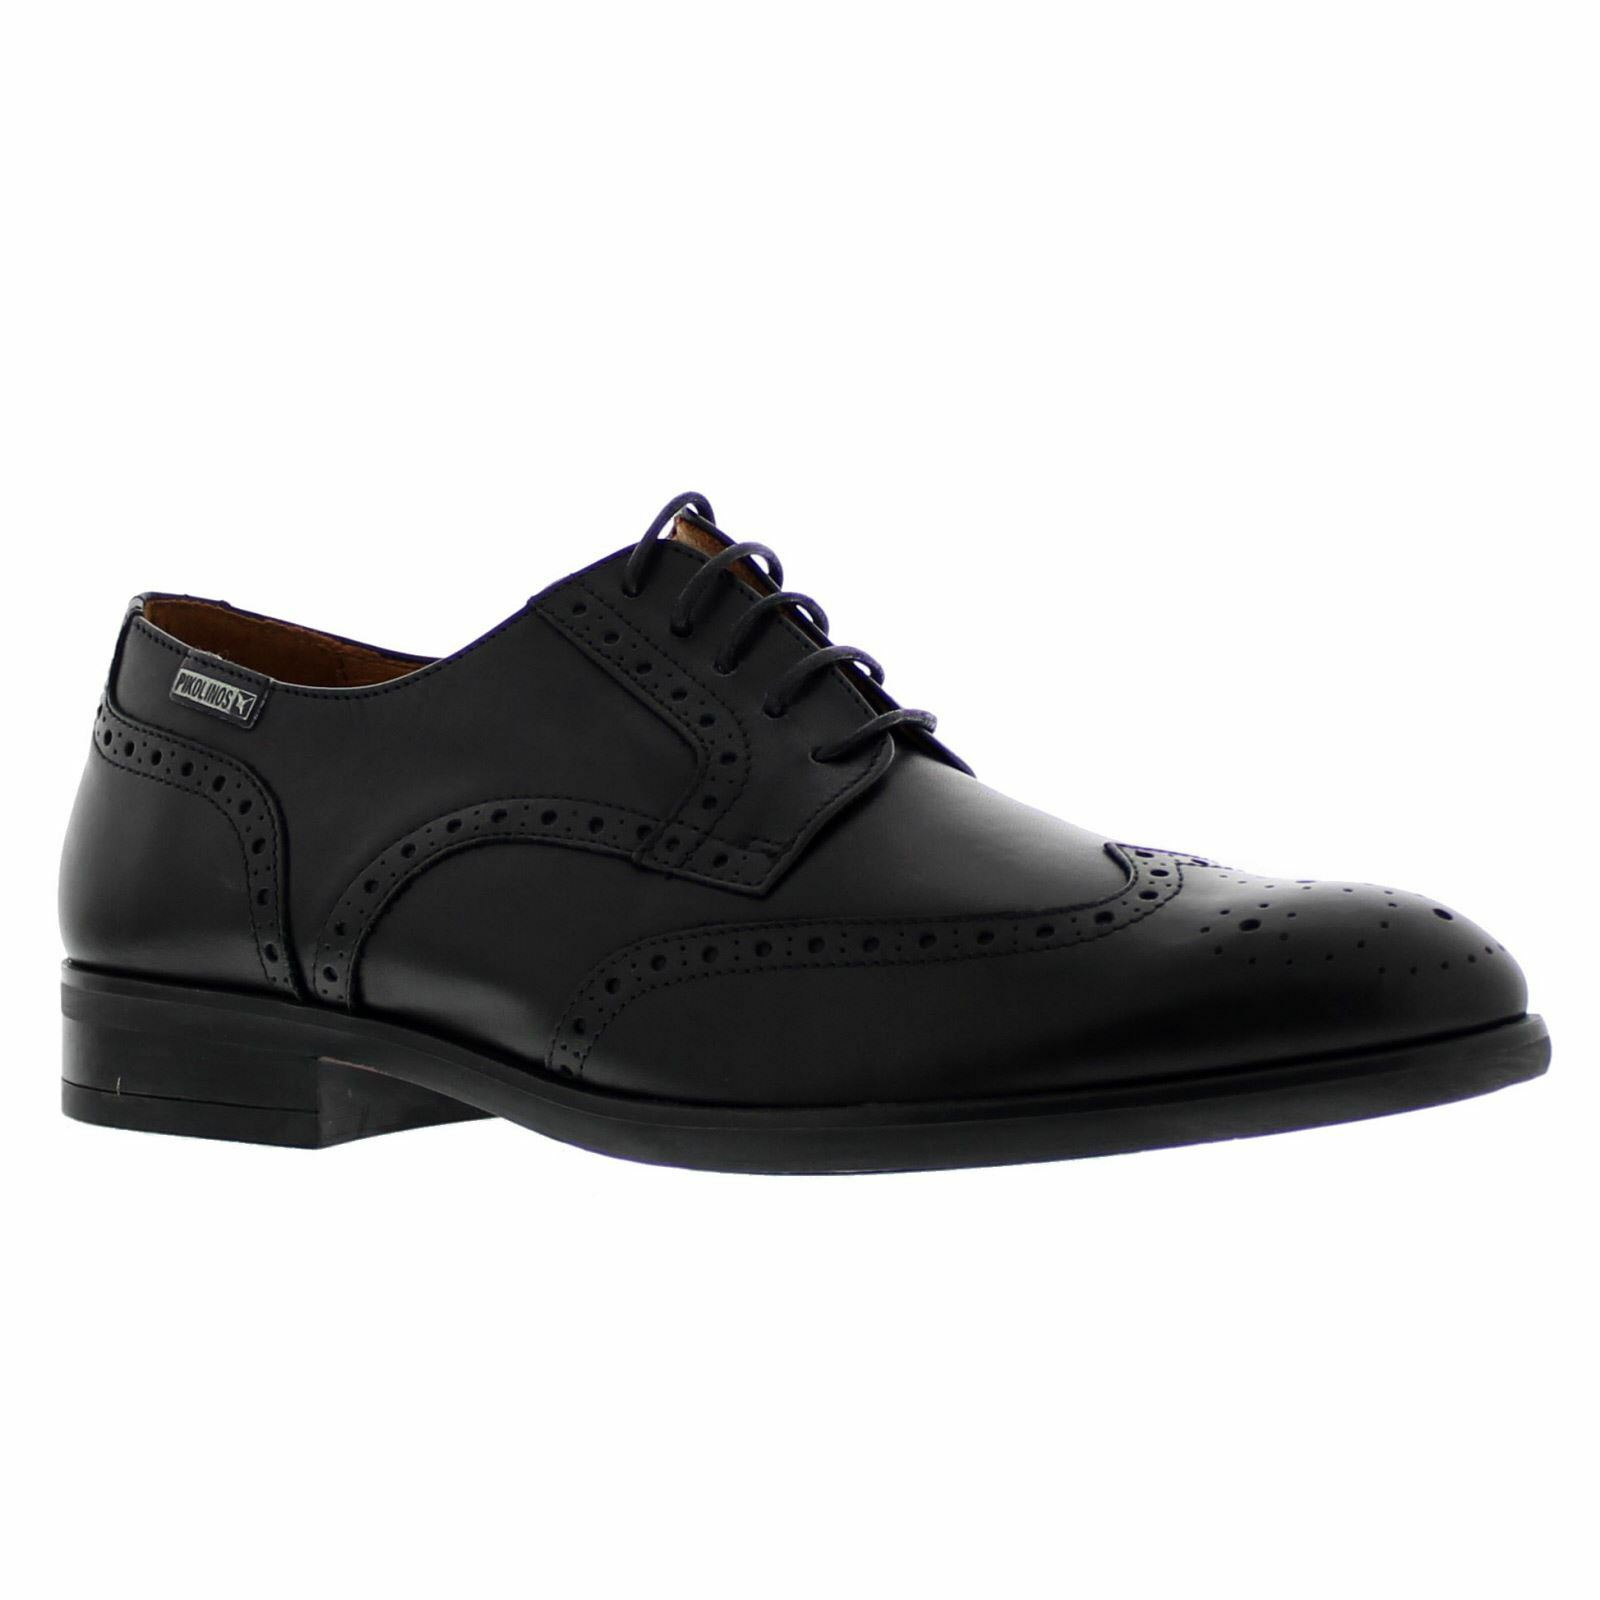 Pikolinos Bristol M7J-4186 Black Mens Leather Brogue Laced Formal shoes